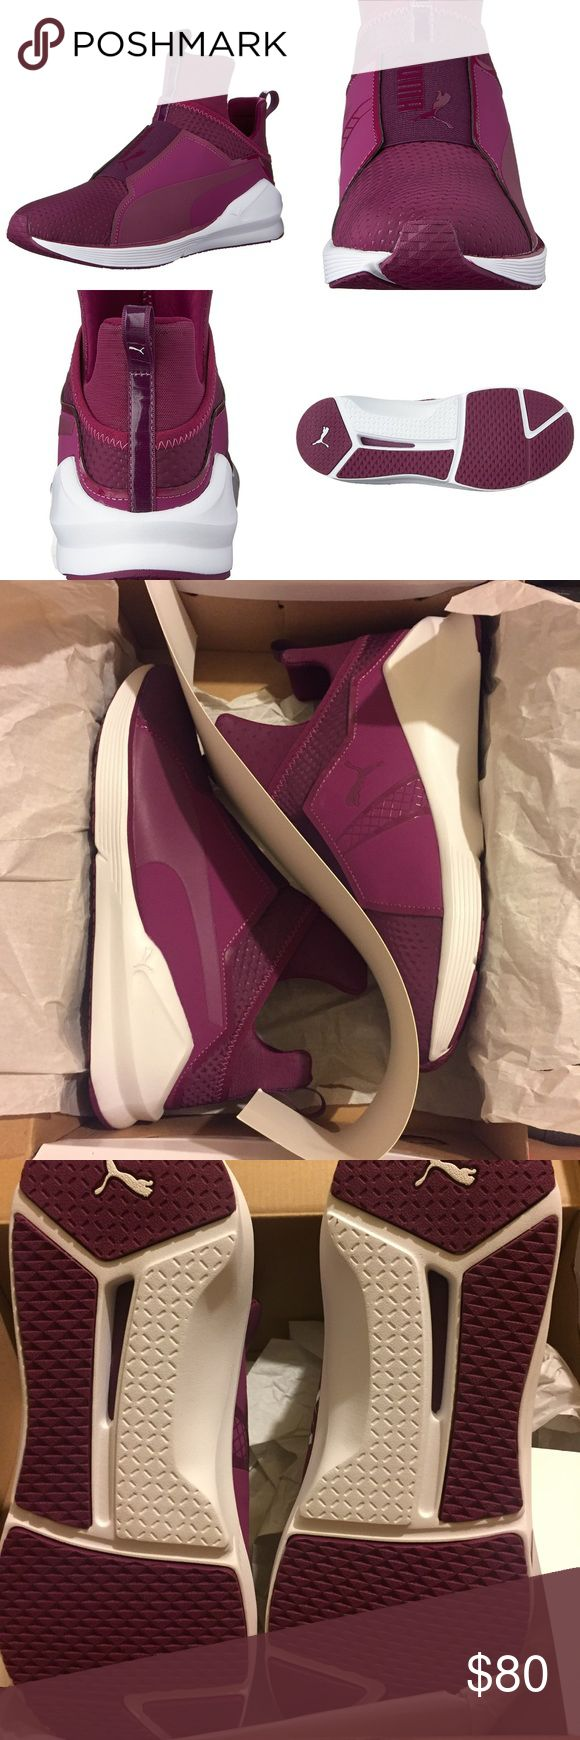 NEW PUMA FIERCE QUILTED MAGENTA PUTPLE WMNS 8 New with box. Authentic. Color is magenta purple. Women's size 8. These shoes do not have shoe laces. No defects. Puma Shoes Sneakers